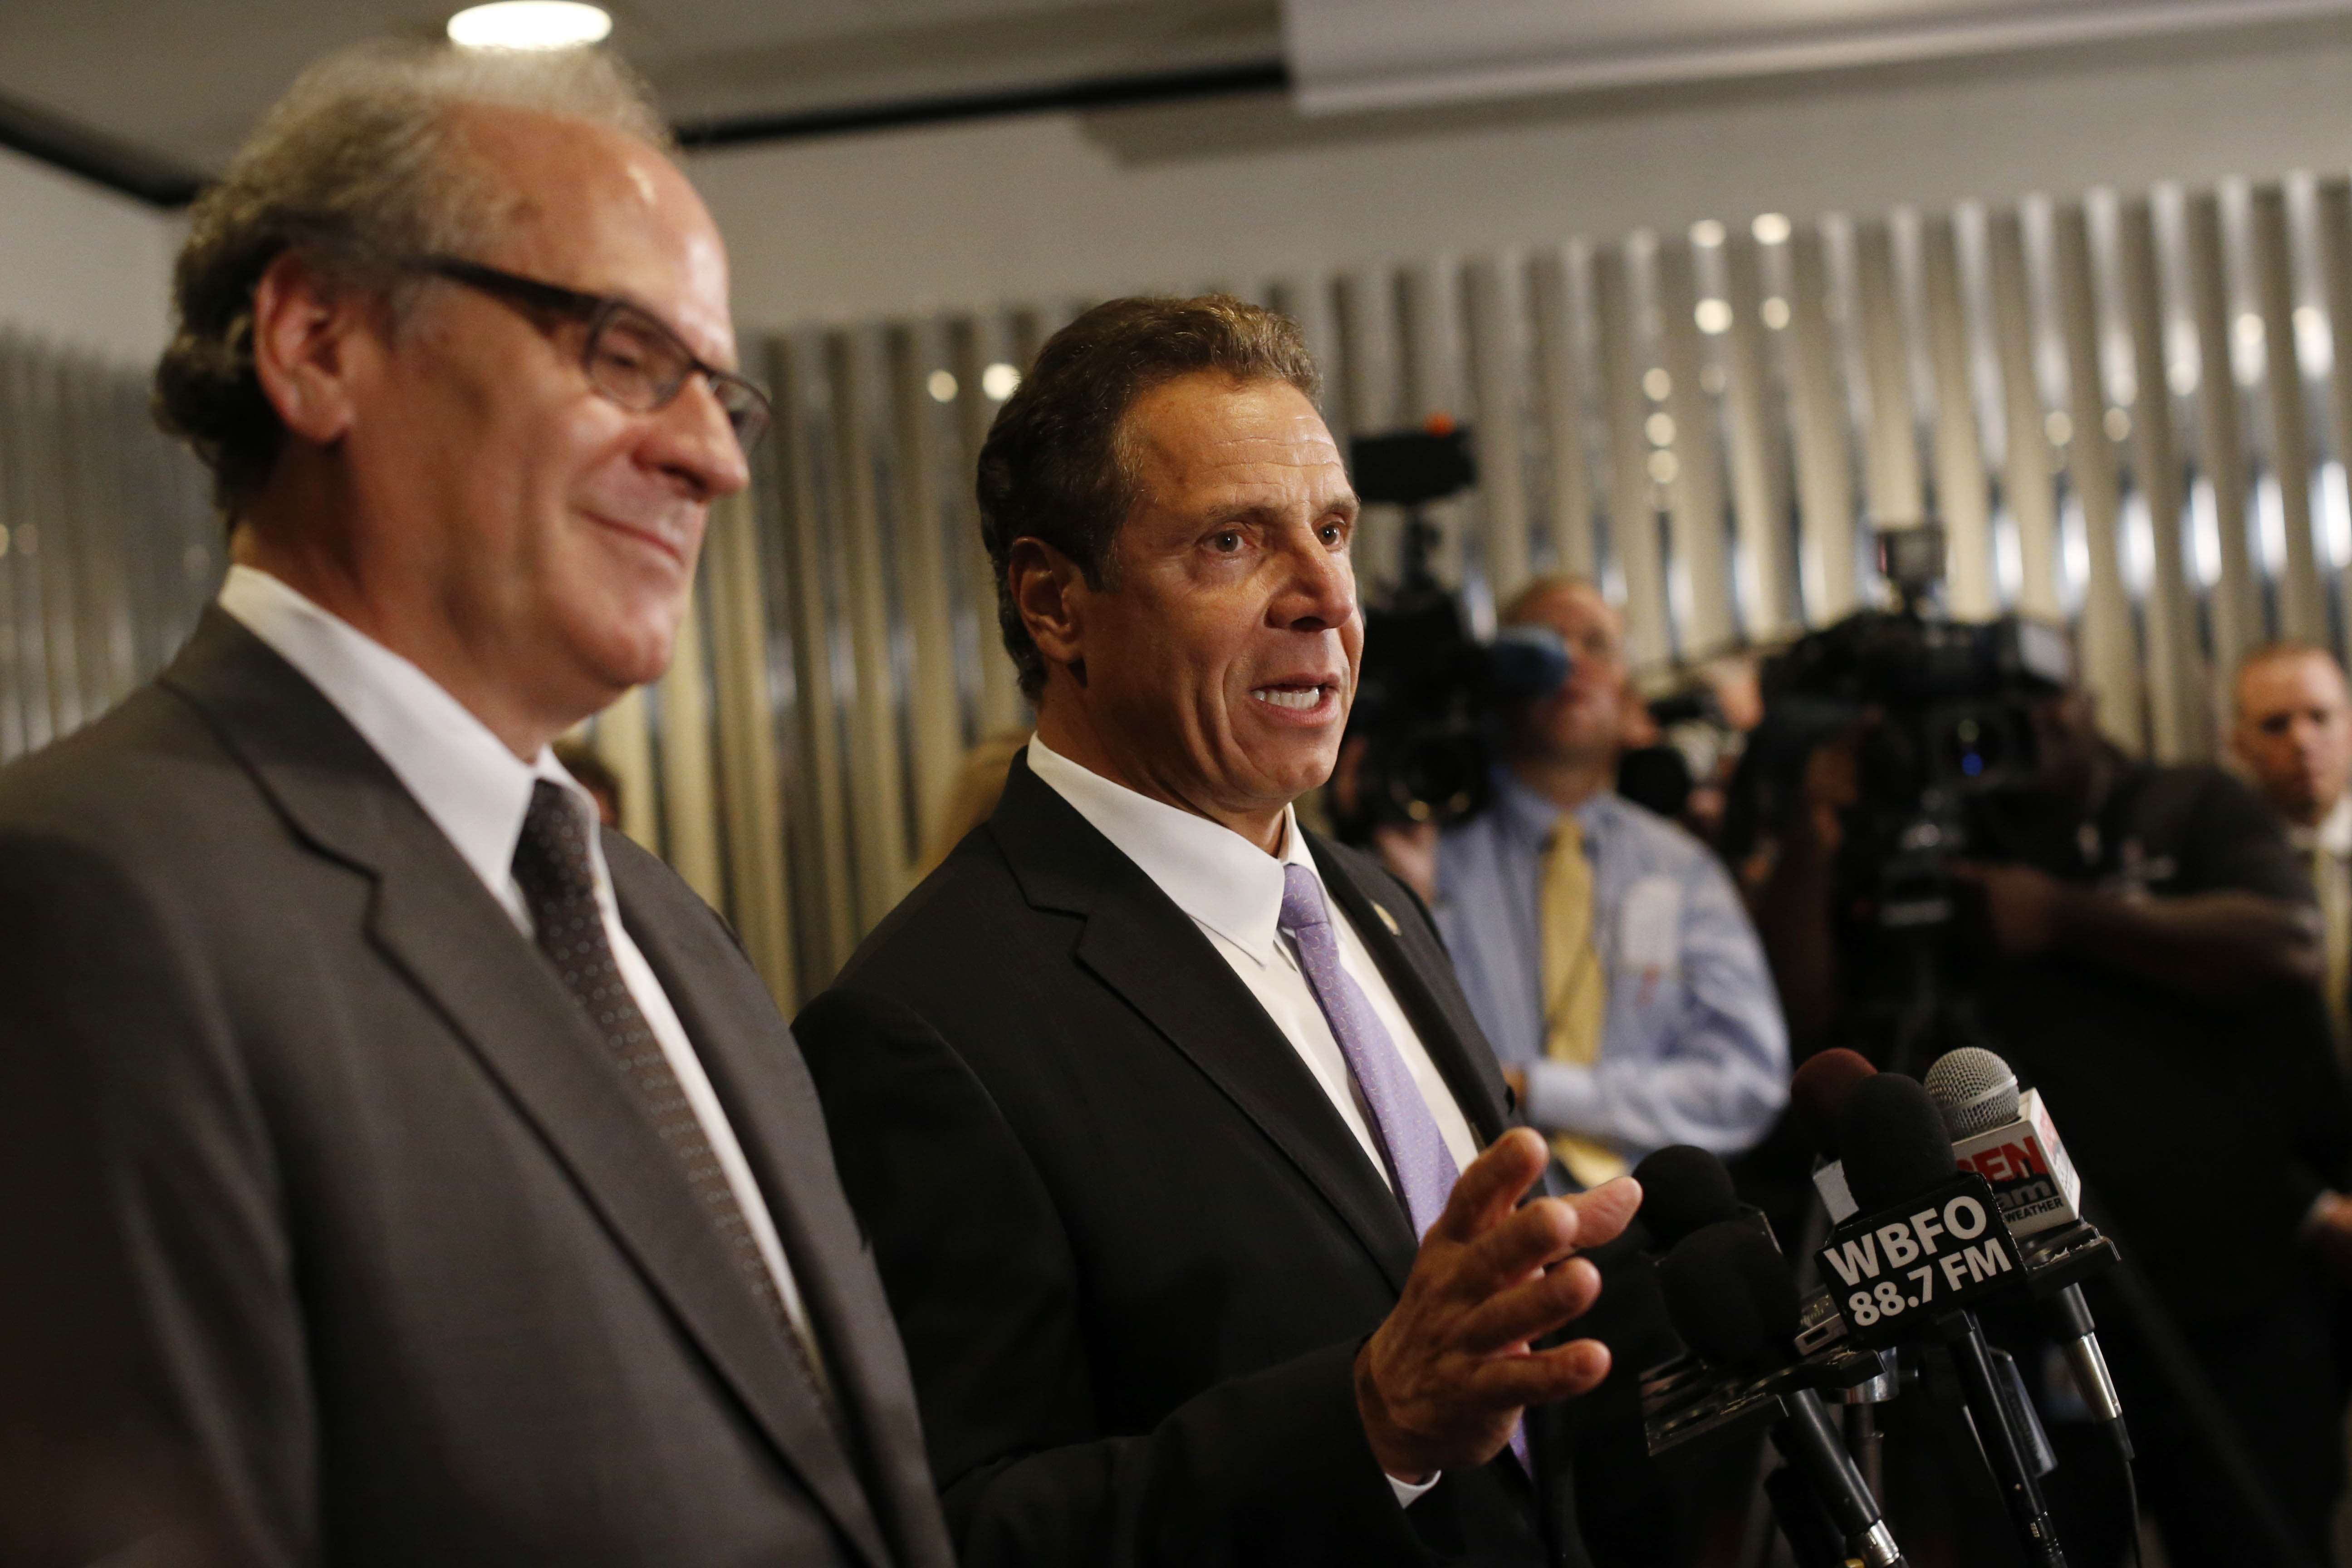 Gov. Andrew Cuomo speaks during a gaggle with reporters following an event at the Albright-Knox Art Gallery on Friday, Sept. 23, 2016. Looking on is Empire State Development CEO Howard Zemsky. (Derek Gee/Buffalo News)